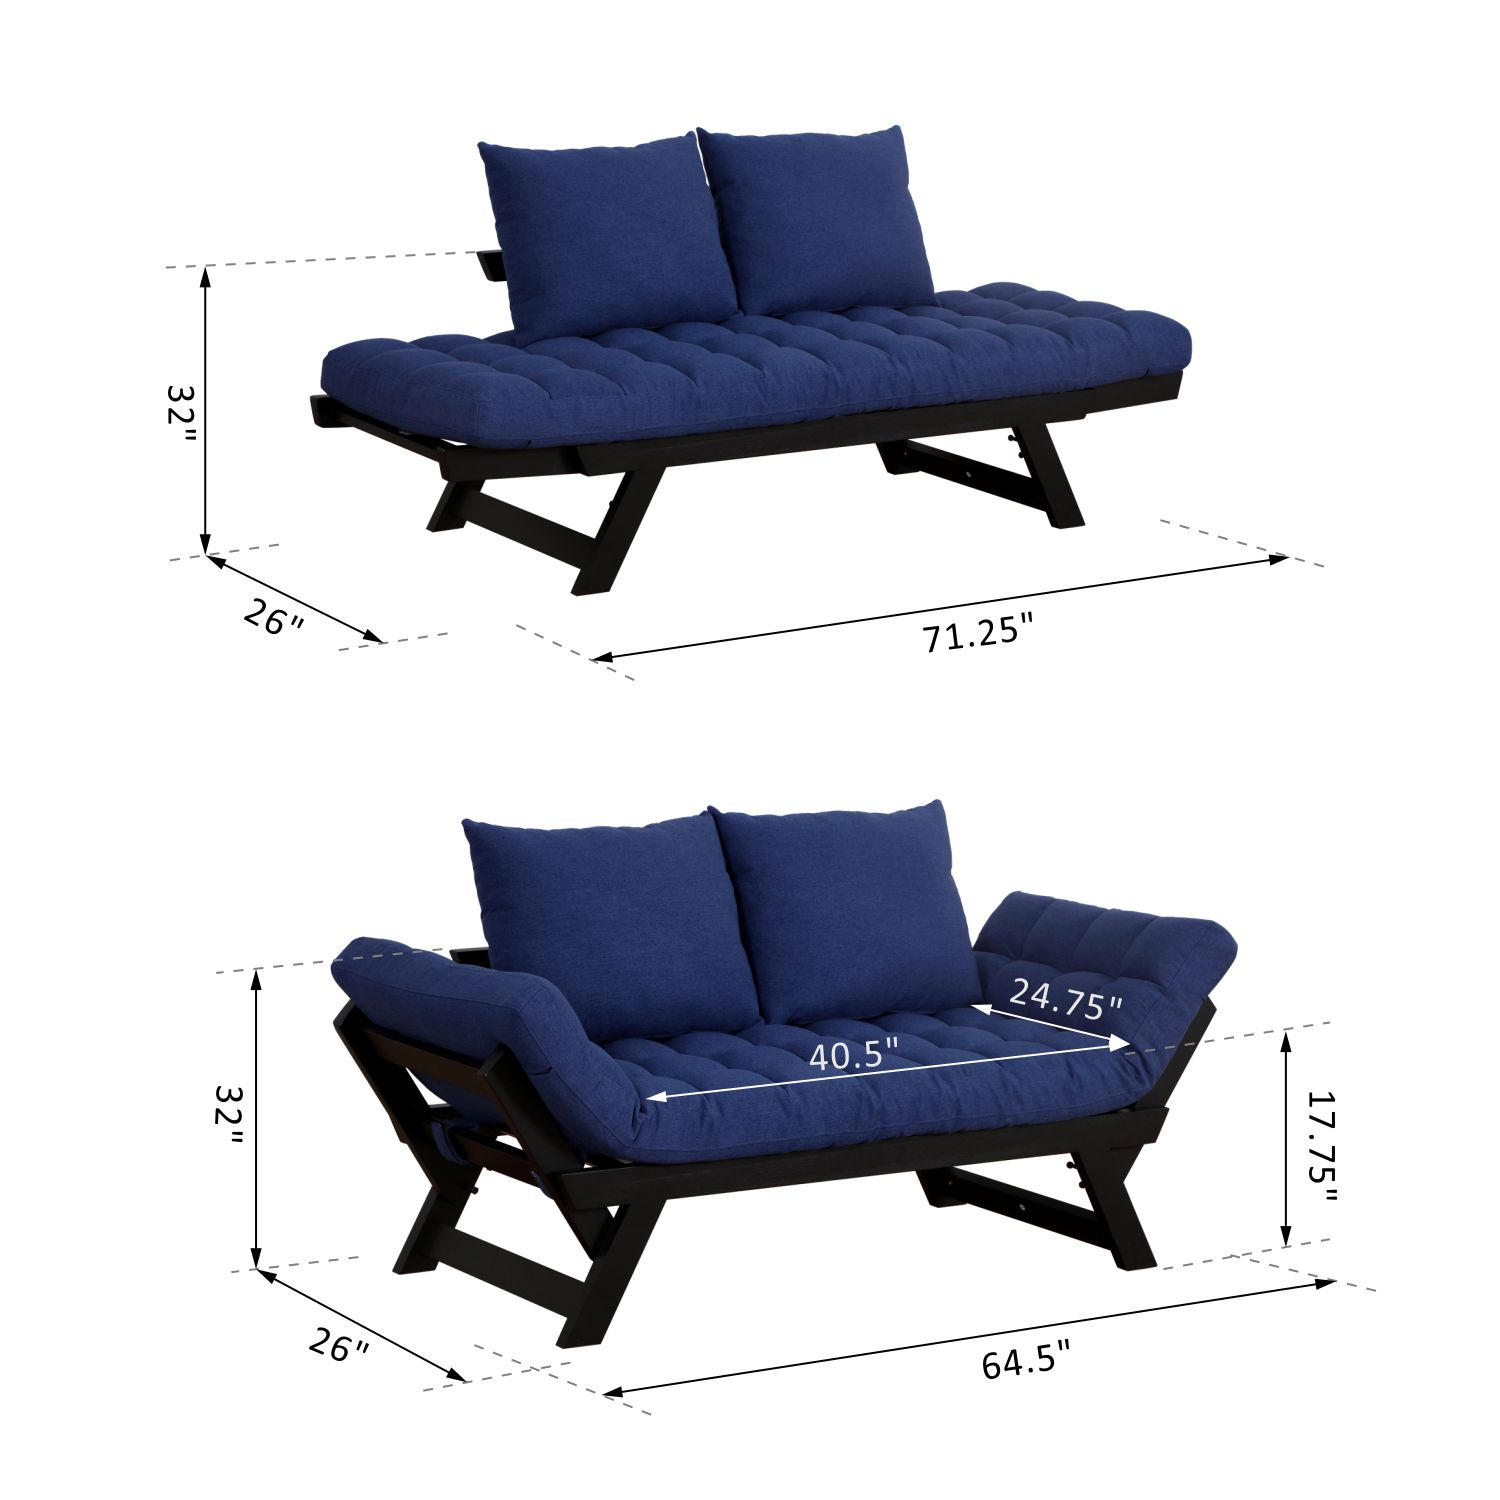 Convertible-Sofa-Bed-Sleeper-Couch-Chaise-Lounge-Chair-Adjustable-Padded-Pillow thumbnail 12